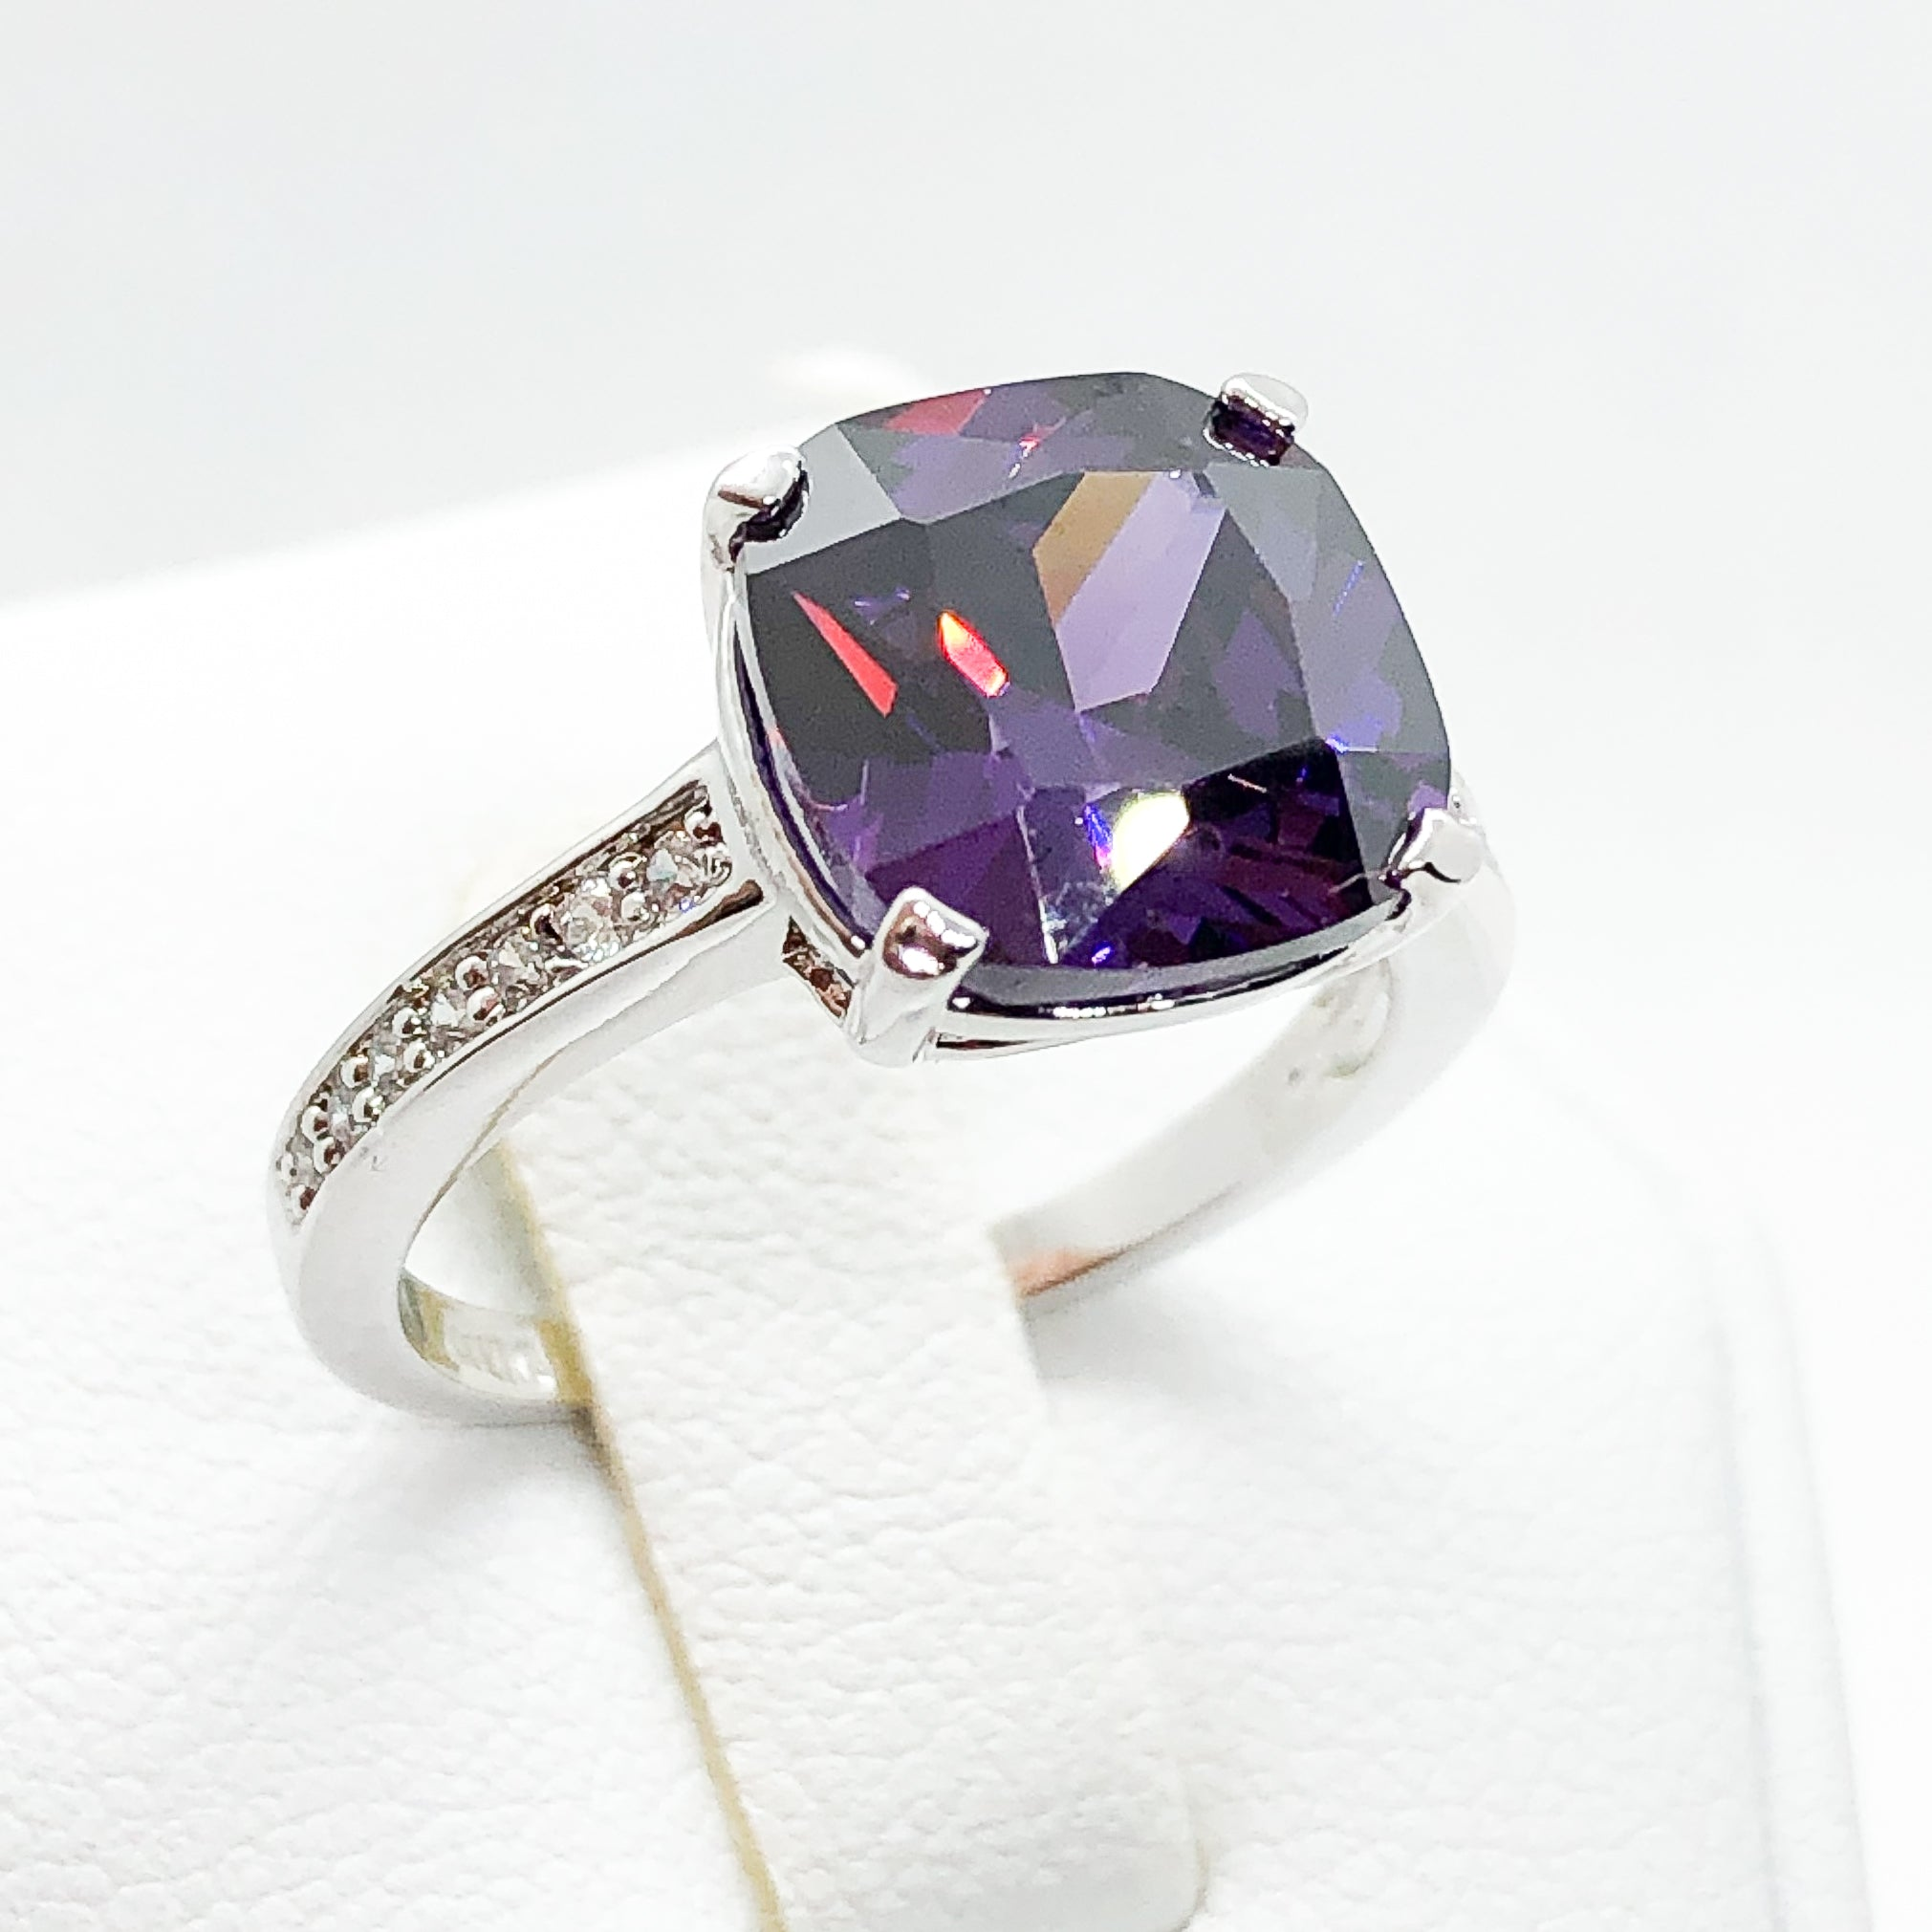 ID:R7546 Women Jewelry 18K White Gold GF Stunning Big Solitaire Amethyst Ring With Clear Round Stones Accent